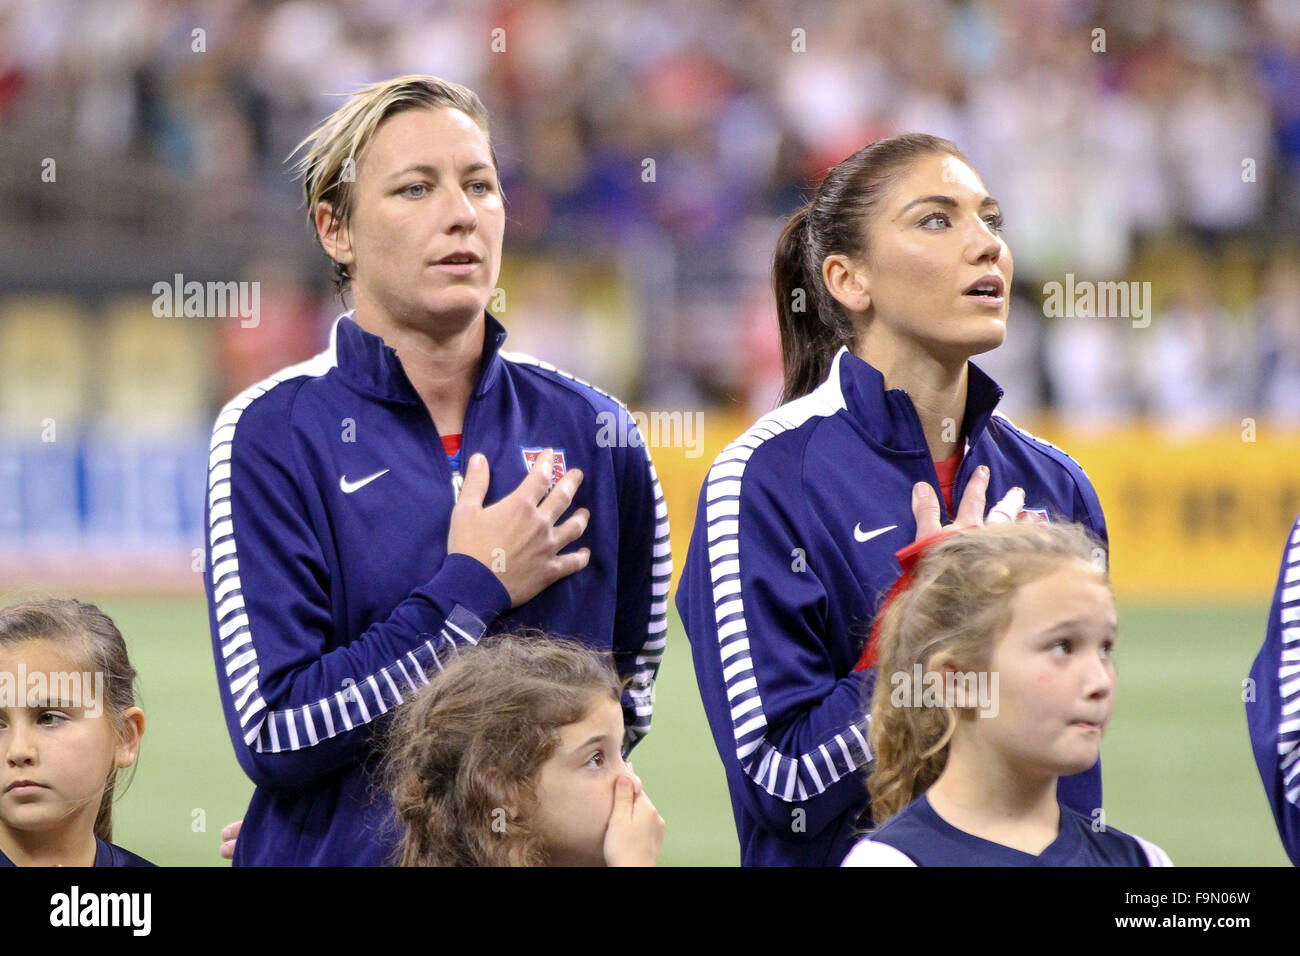 New Orleans Louisiana, USA. 16th Dec, 2015. United States of America forward Abby Wambach (20) and United States - Stock Image